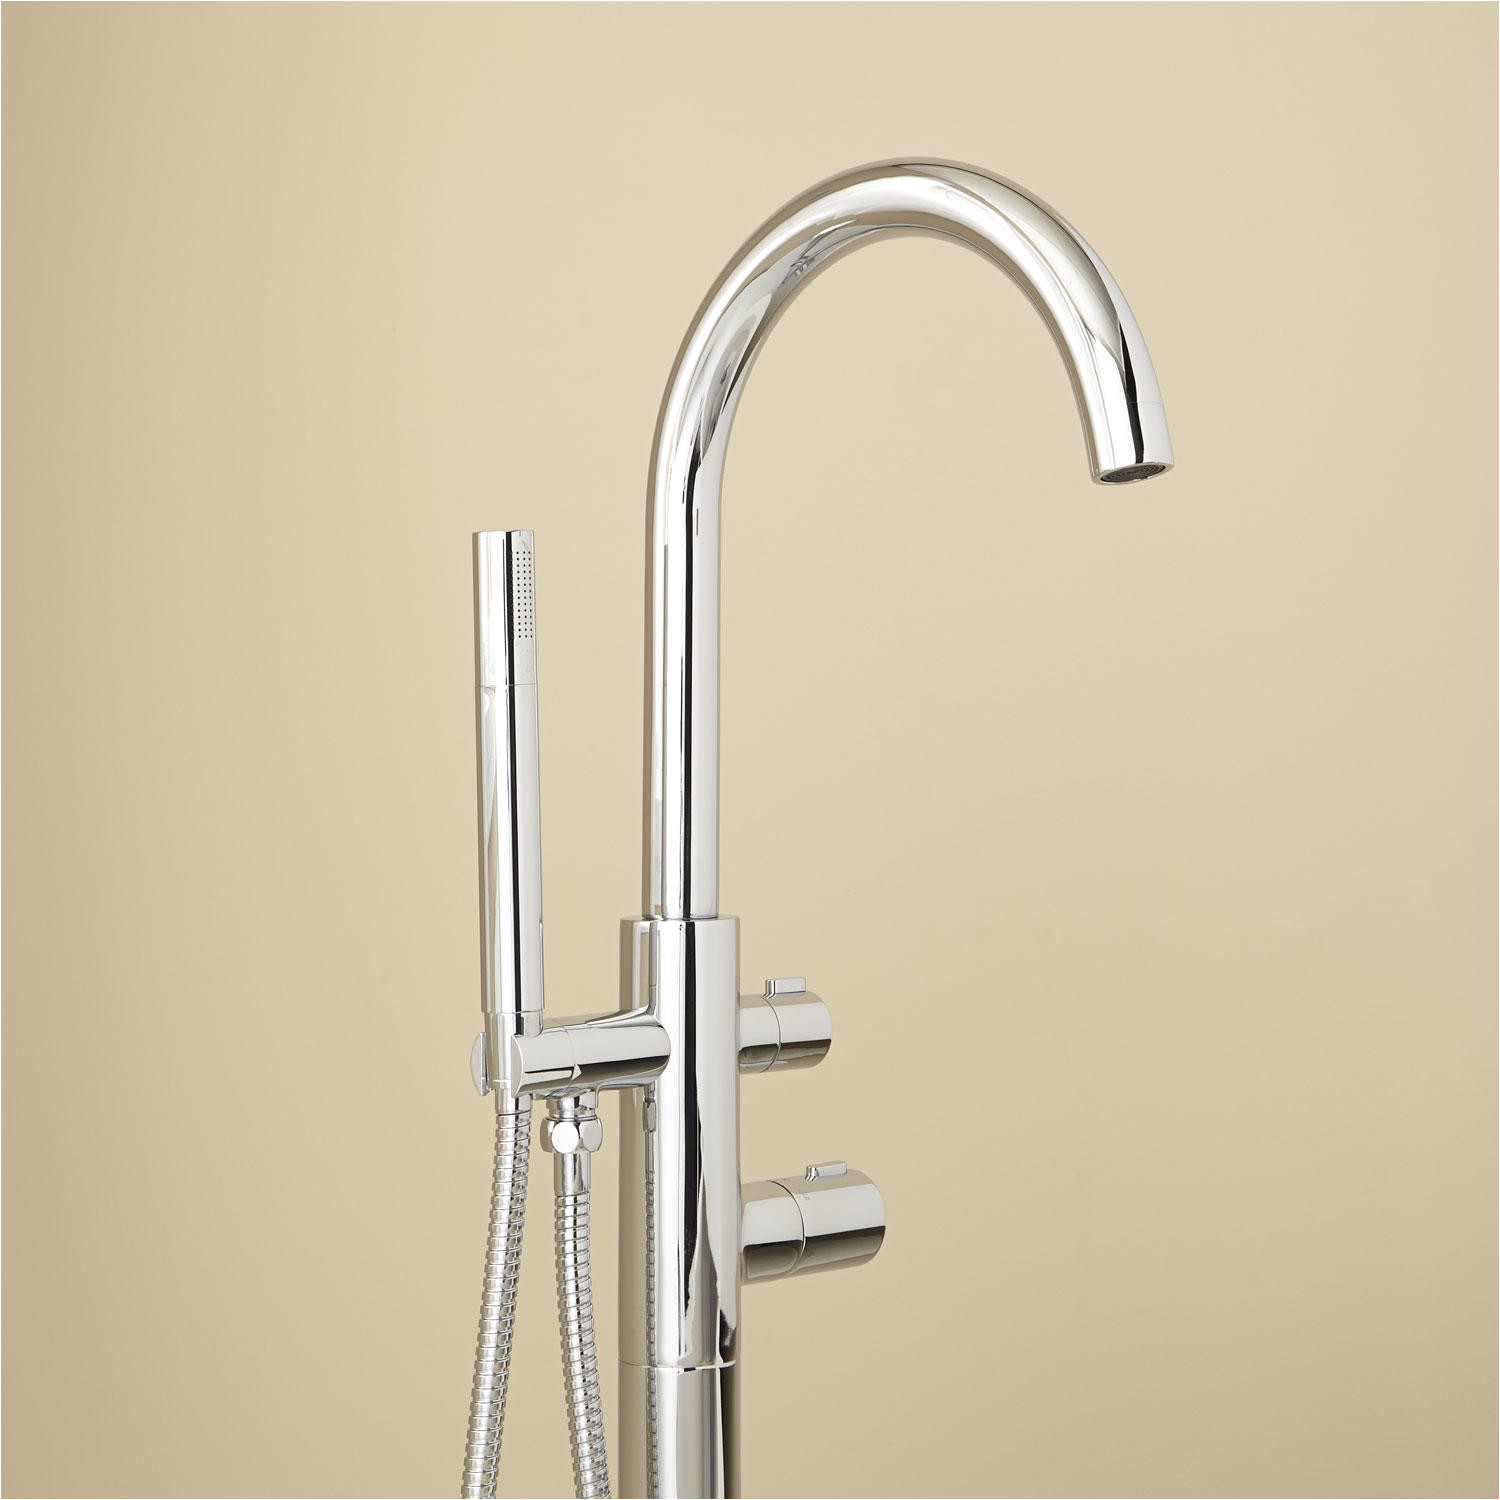 Freestanding Tubs and Faucets Algos thermostatic Freestanding Tub Faucet Tub Faucets